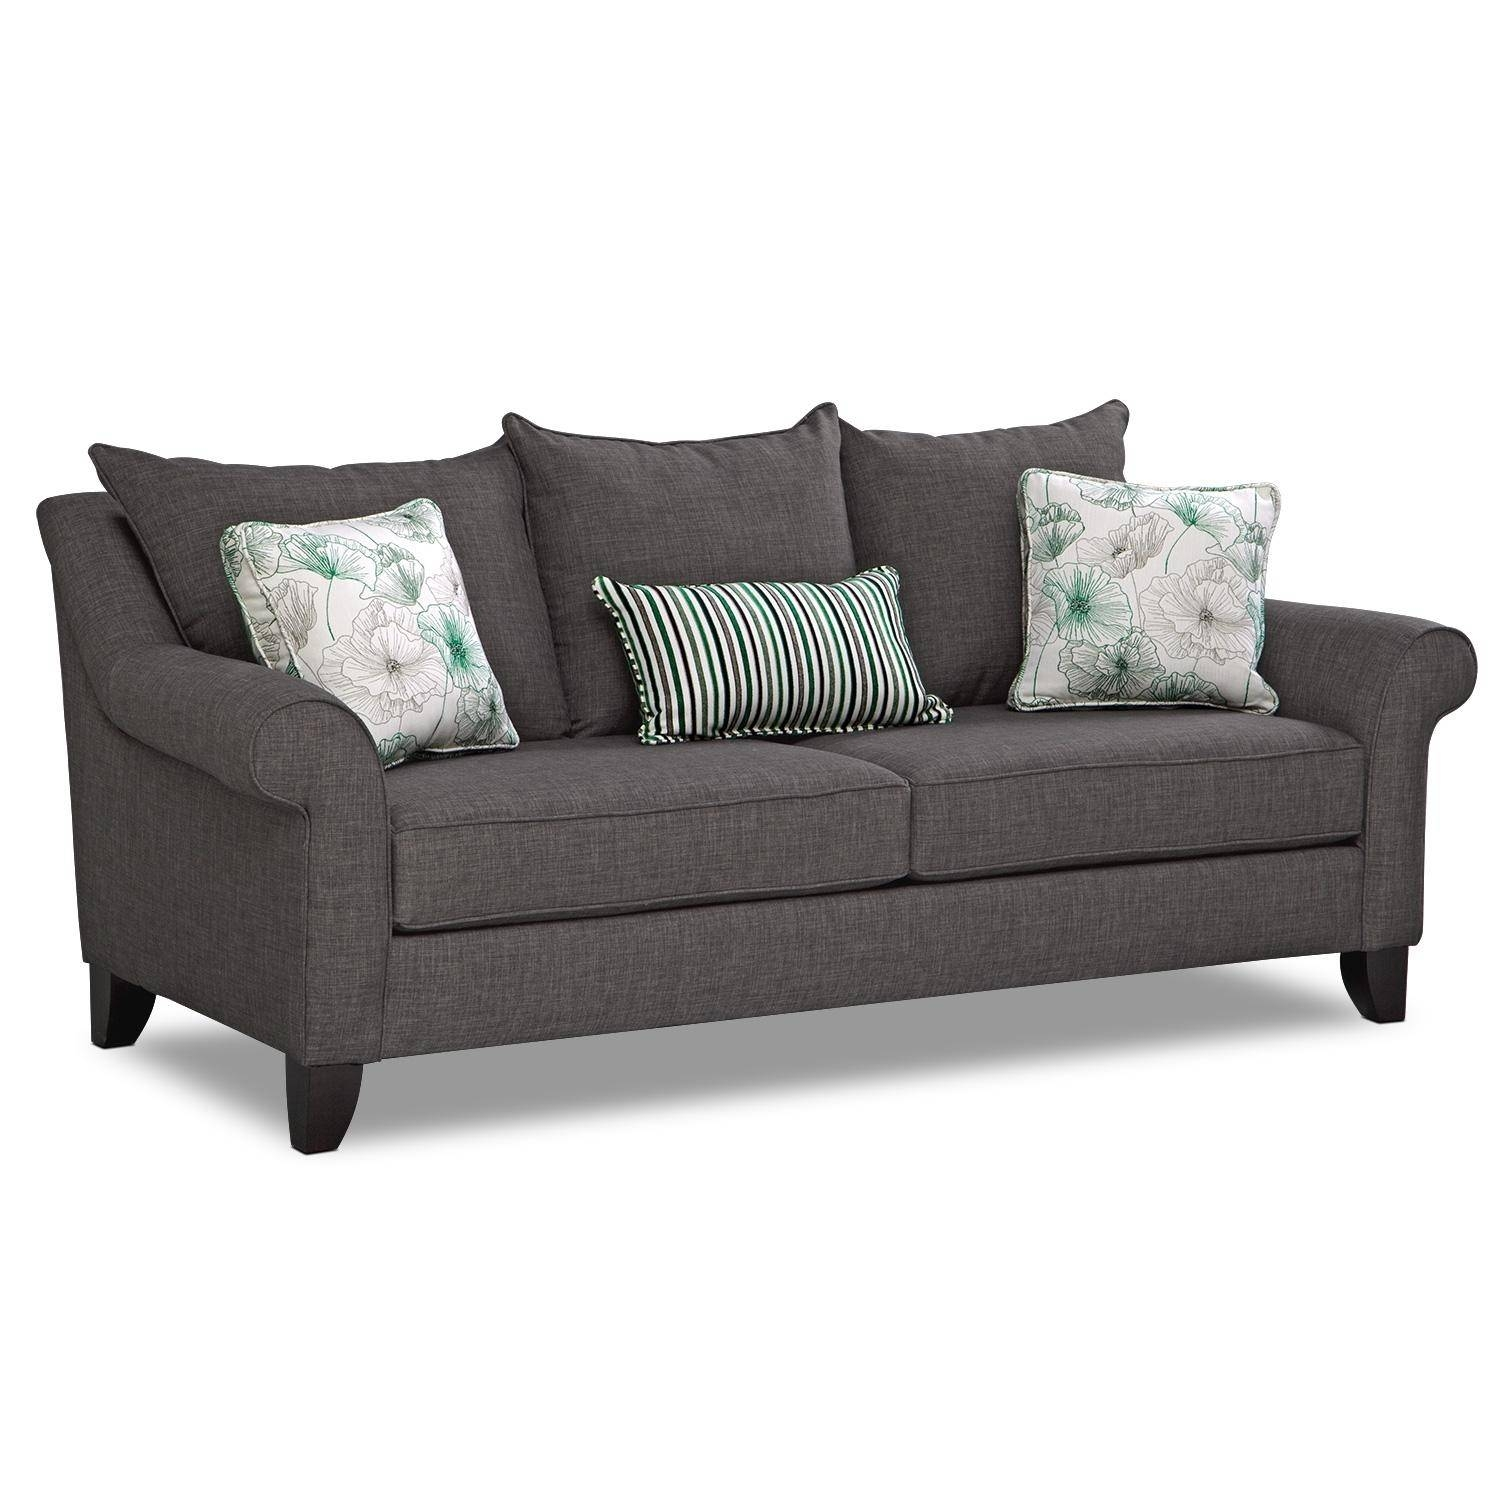 20 Collection Of Davis Sleeper Sofas | Sofa Ideas intended for Davis Sleeper Sofas (Image 2 of 15)